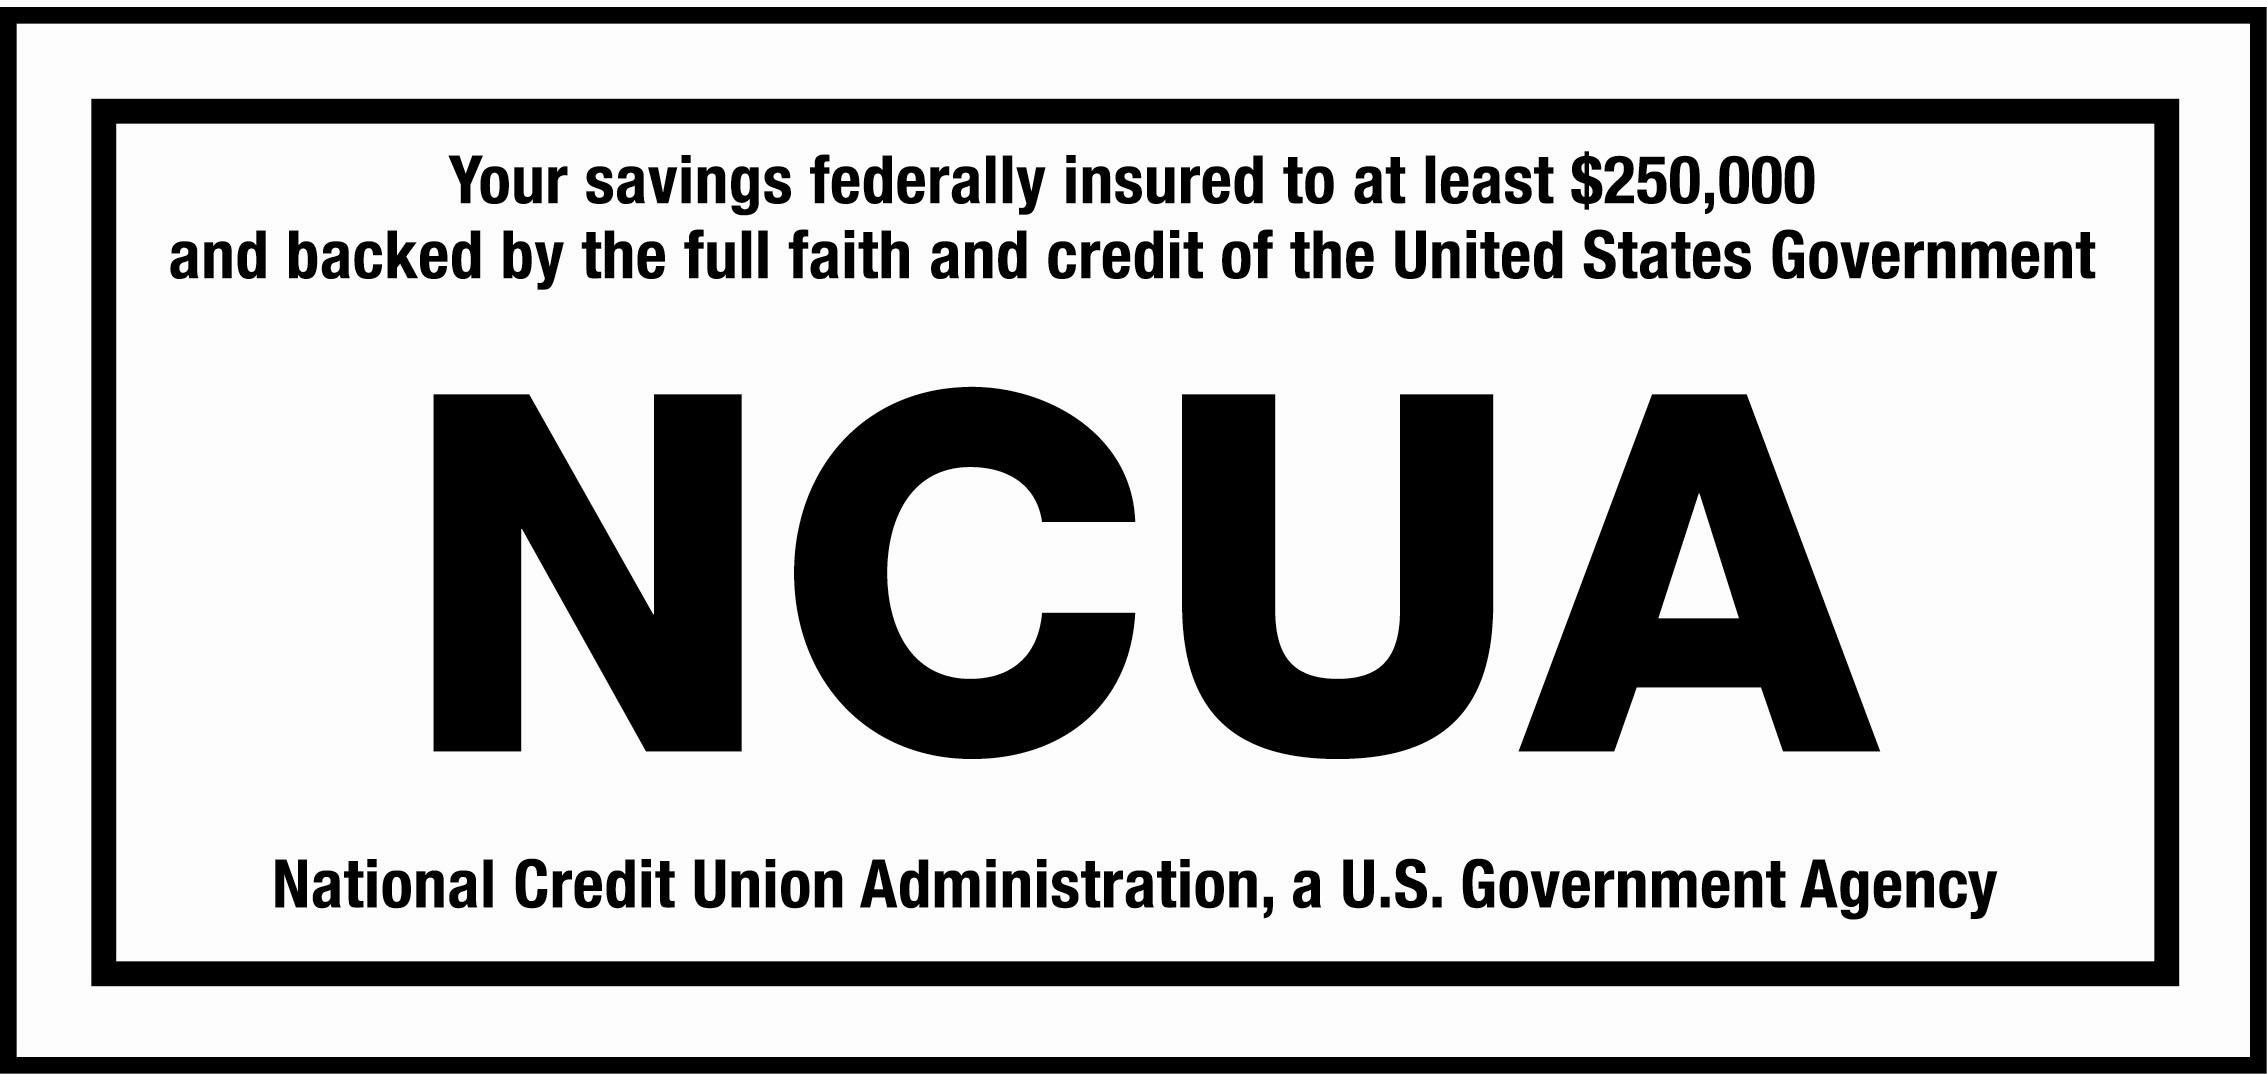 National Credit Union Administration, a U.S. Government Agency. Your savings federally insured to at least $250,000 and backed by the full faith and credit of the United States Government.